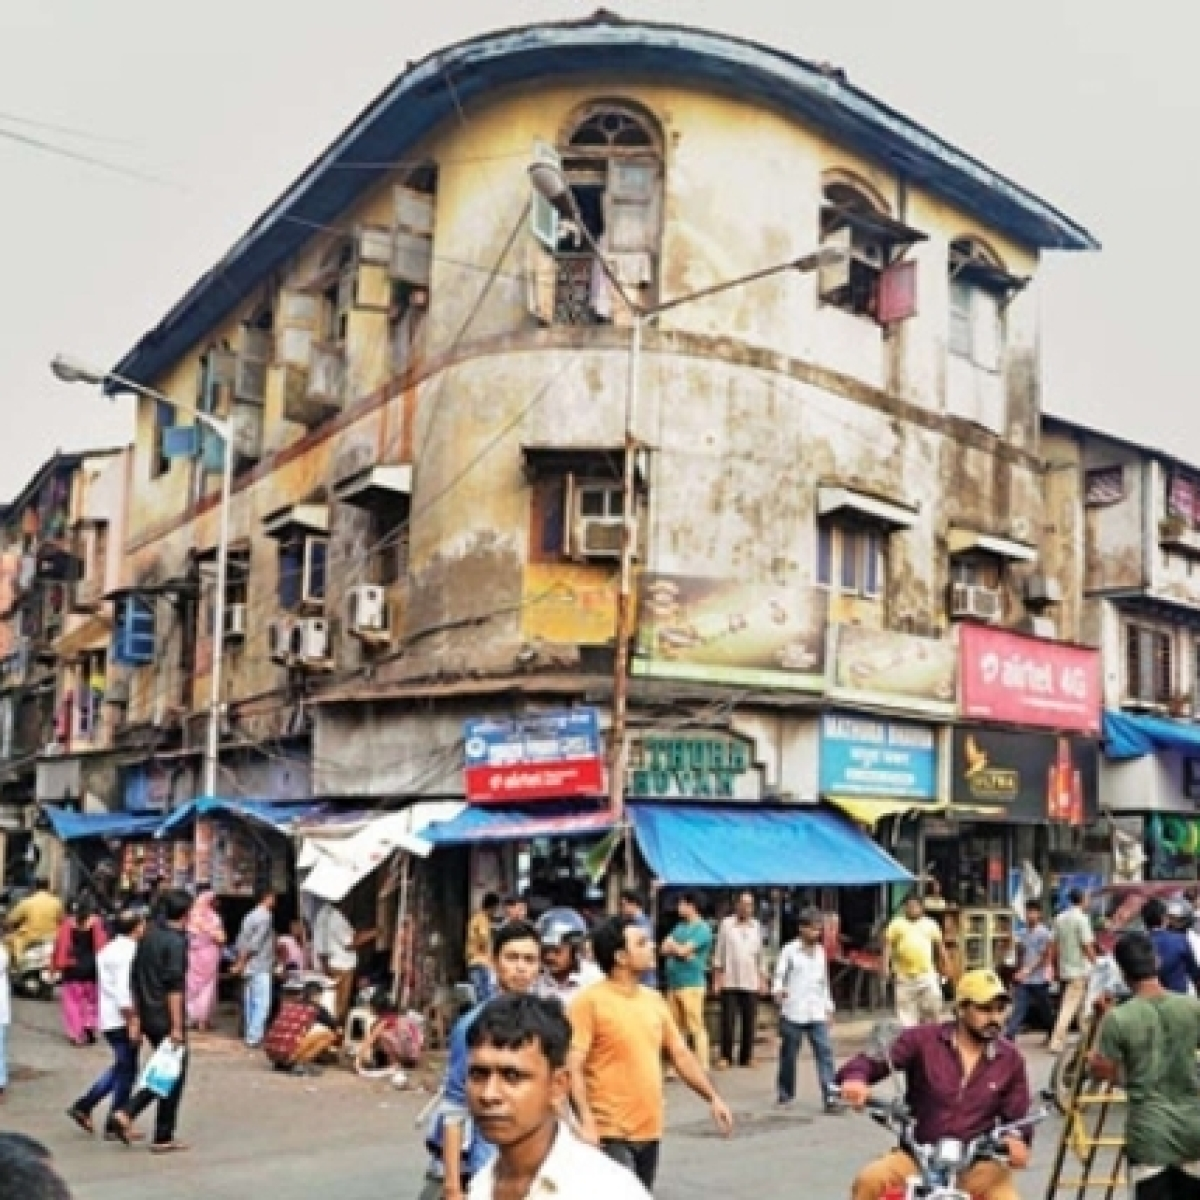 MHADA says 'cess'-free buildings, but restricts redevelopment